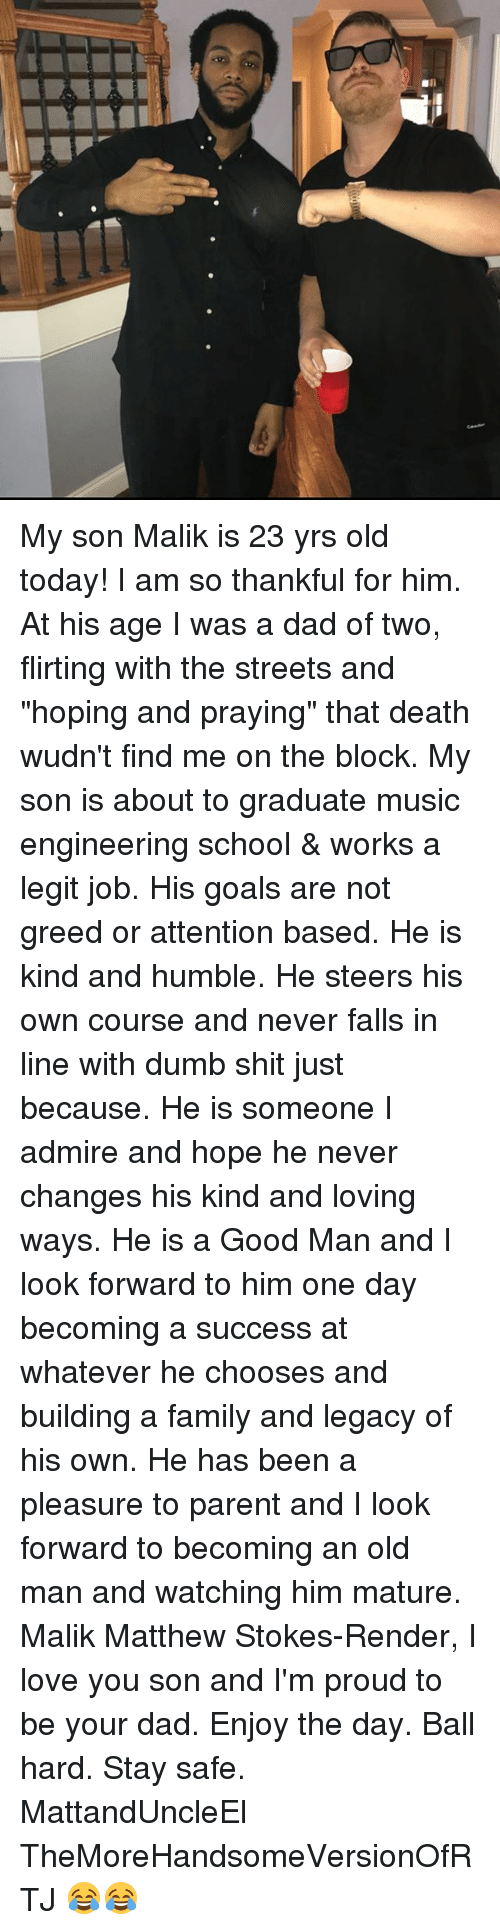 """Dad, Dumb, and Family: My son Malik is 23 yrs old today! I am so thankful for him. At his age I was a dad of two, flirting with the streets and """"hoping and praying"""" that death wudn't find me on the block. My son is about to graduate music engineering school & works a legit job. His goals are not greed or attention based. He is kind and humble. He steers his own course and never falls in line with dumb shit just because. He is someone I admire and hope he never changes his kind and loving ways. He is a Good Man and I look forward to him one day becoming a success at whatever he chooses and building a family and legacy of his own. He has been a pleasure to parent and I look forward to becoming an old man and watching him mature. Malik Matthew Stokes-Render, I love you son and I'm proud to be your dad. Enjoy the day. Ball hard. Stay safe. MattandUncleEl TheMoreHandsomeVersionOfRTJ 😂😂"""